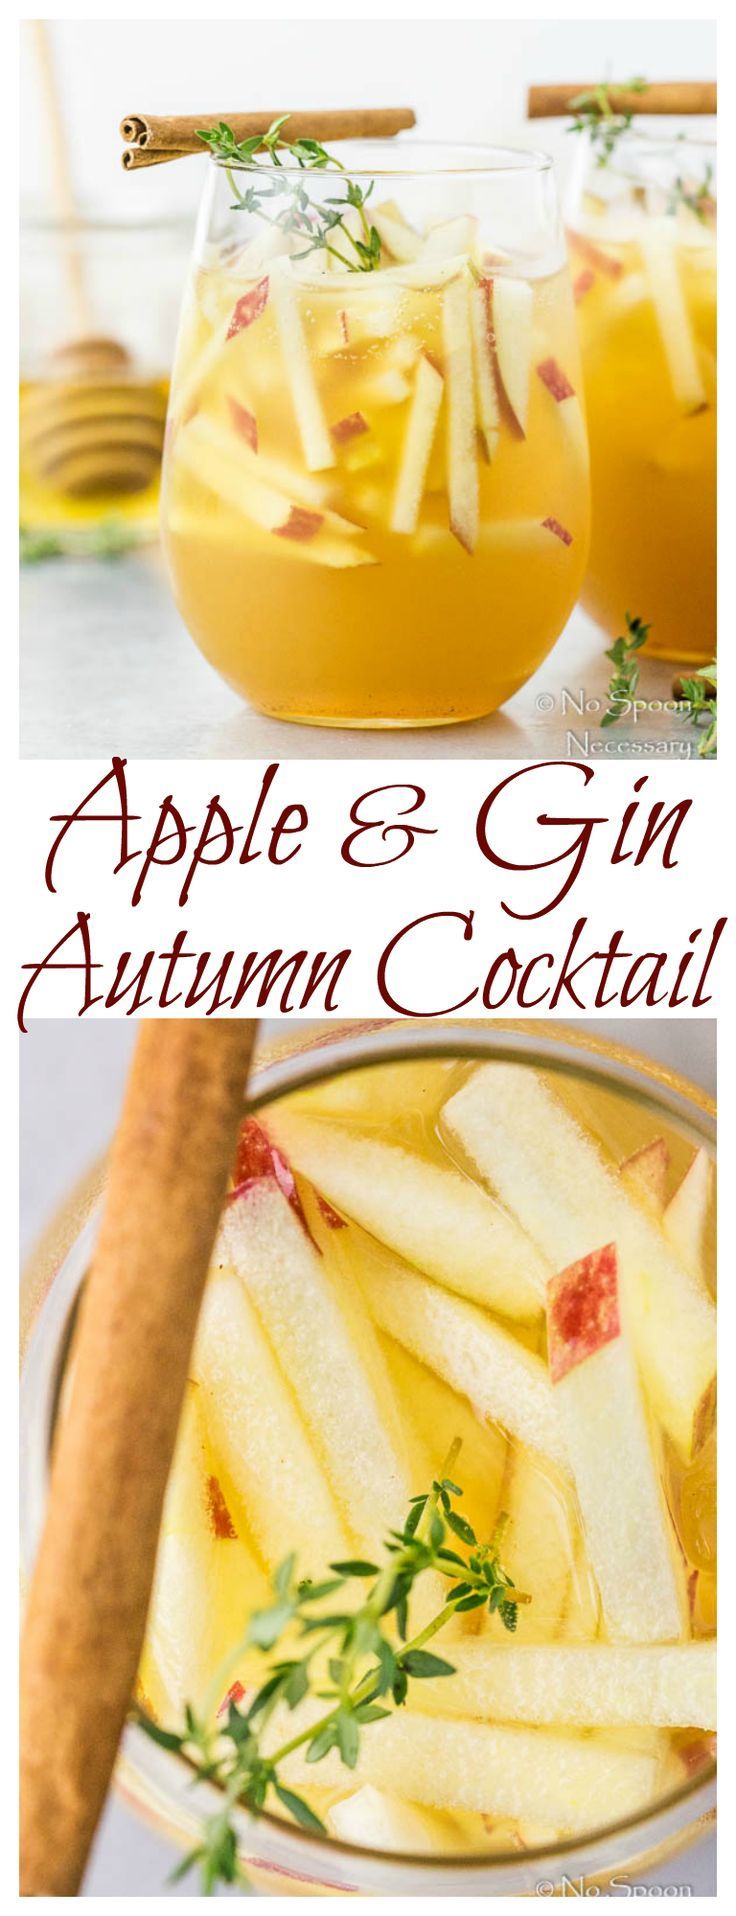 Apple & Gin Autumn Cocktail - Perfect for #Thanksgiving!